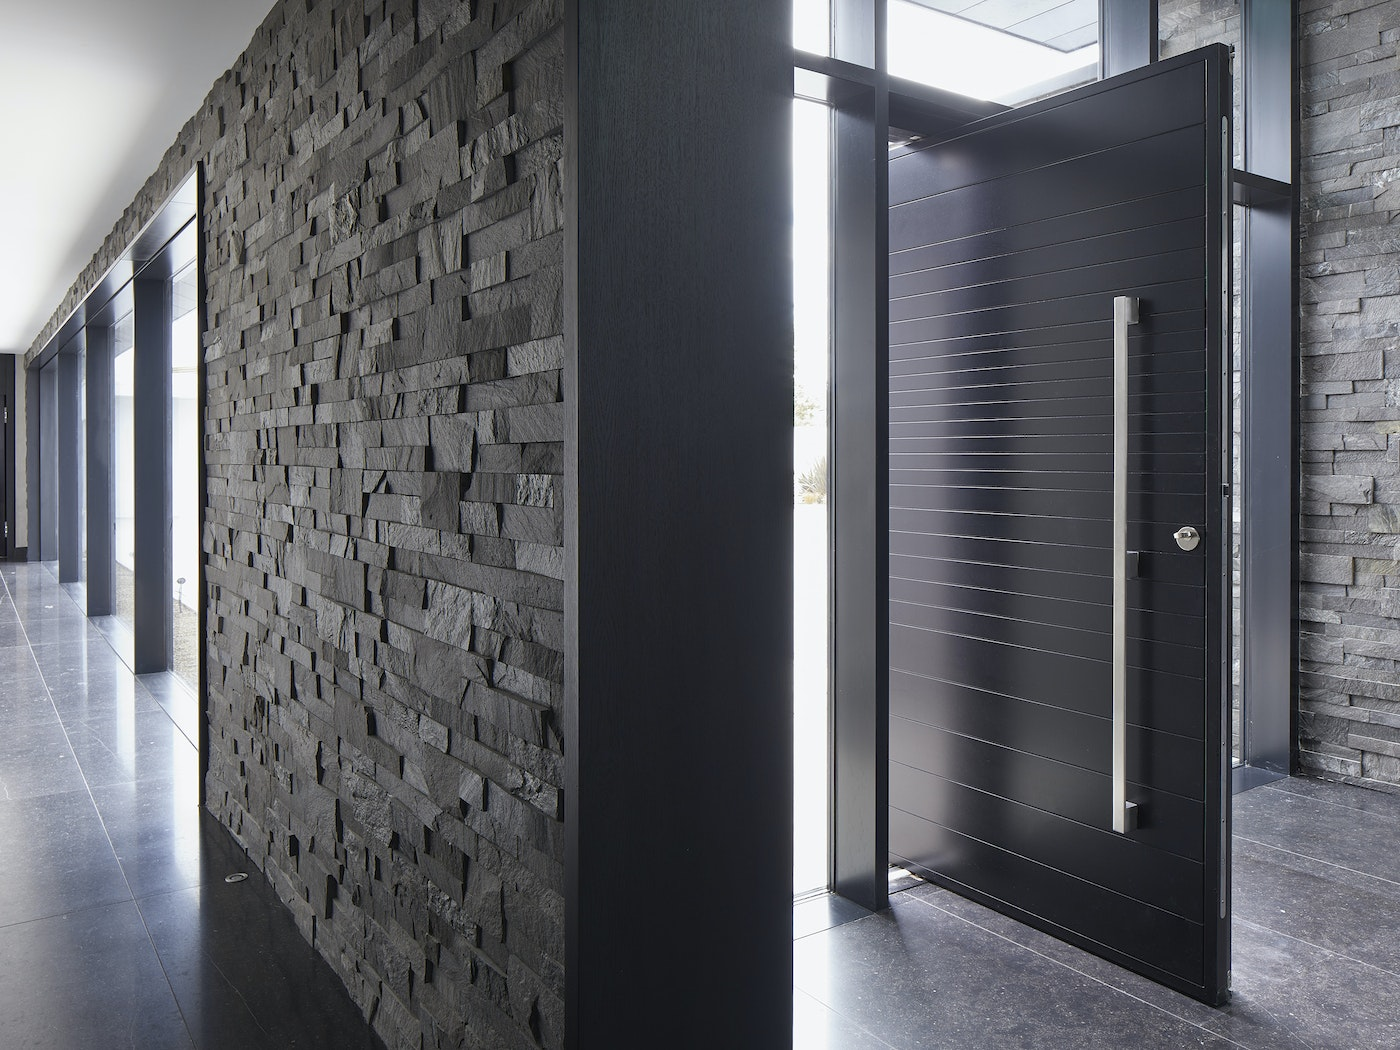 This Neo pivot doorset sits well with the dark tiled floor and the dark grey stone cladding